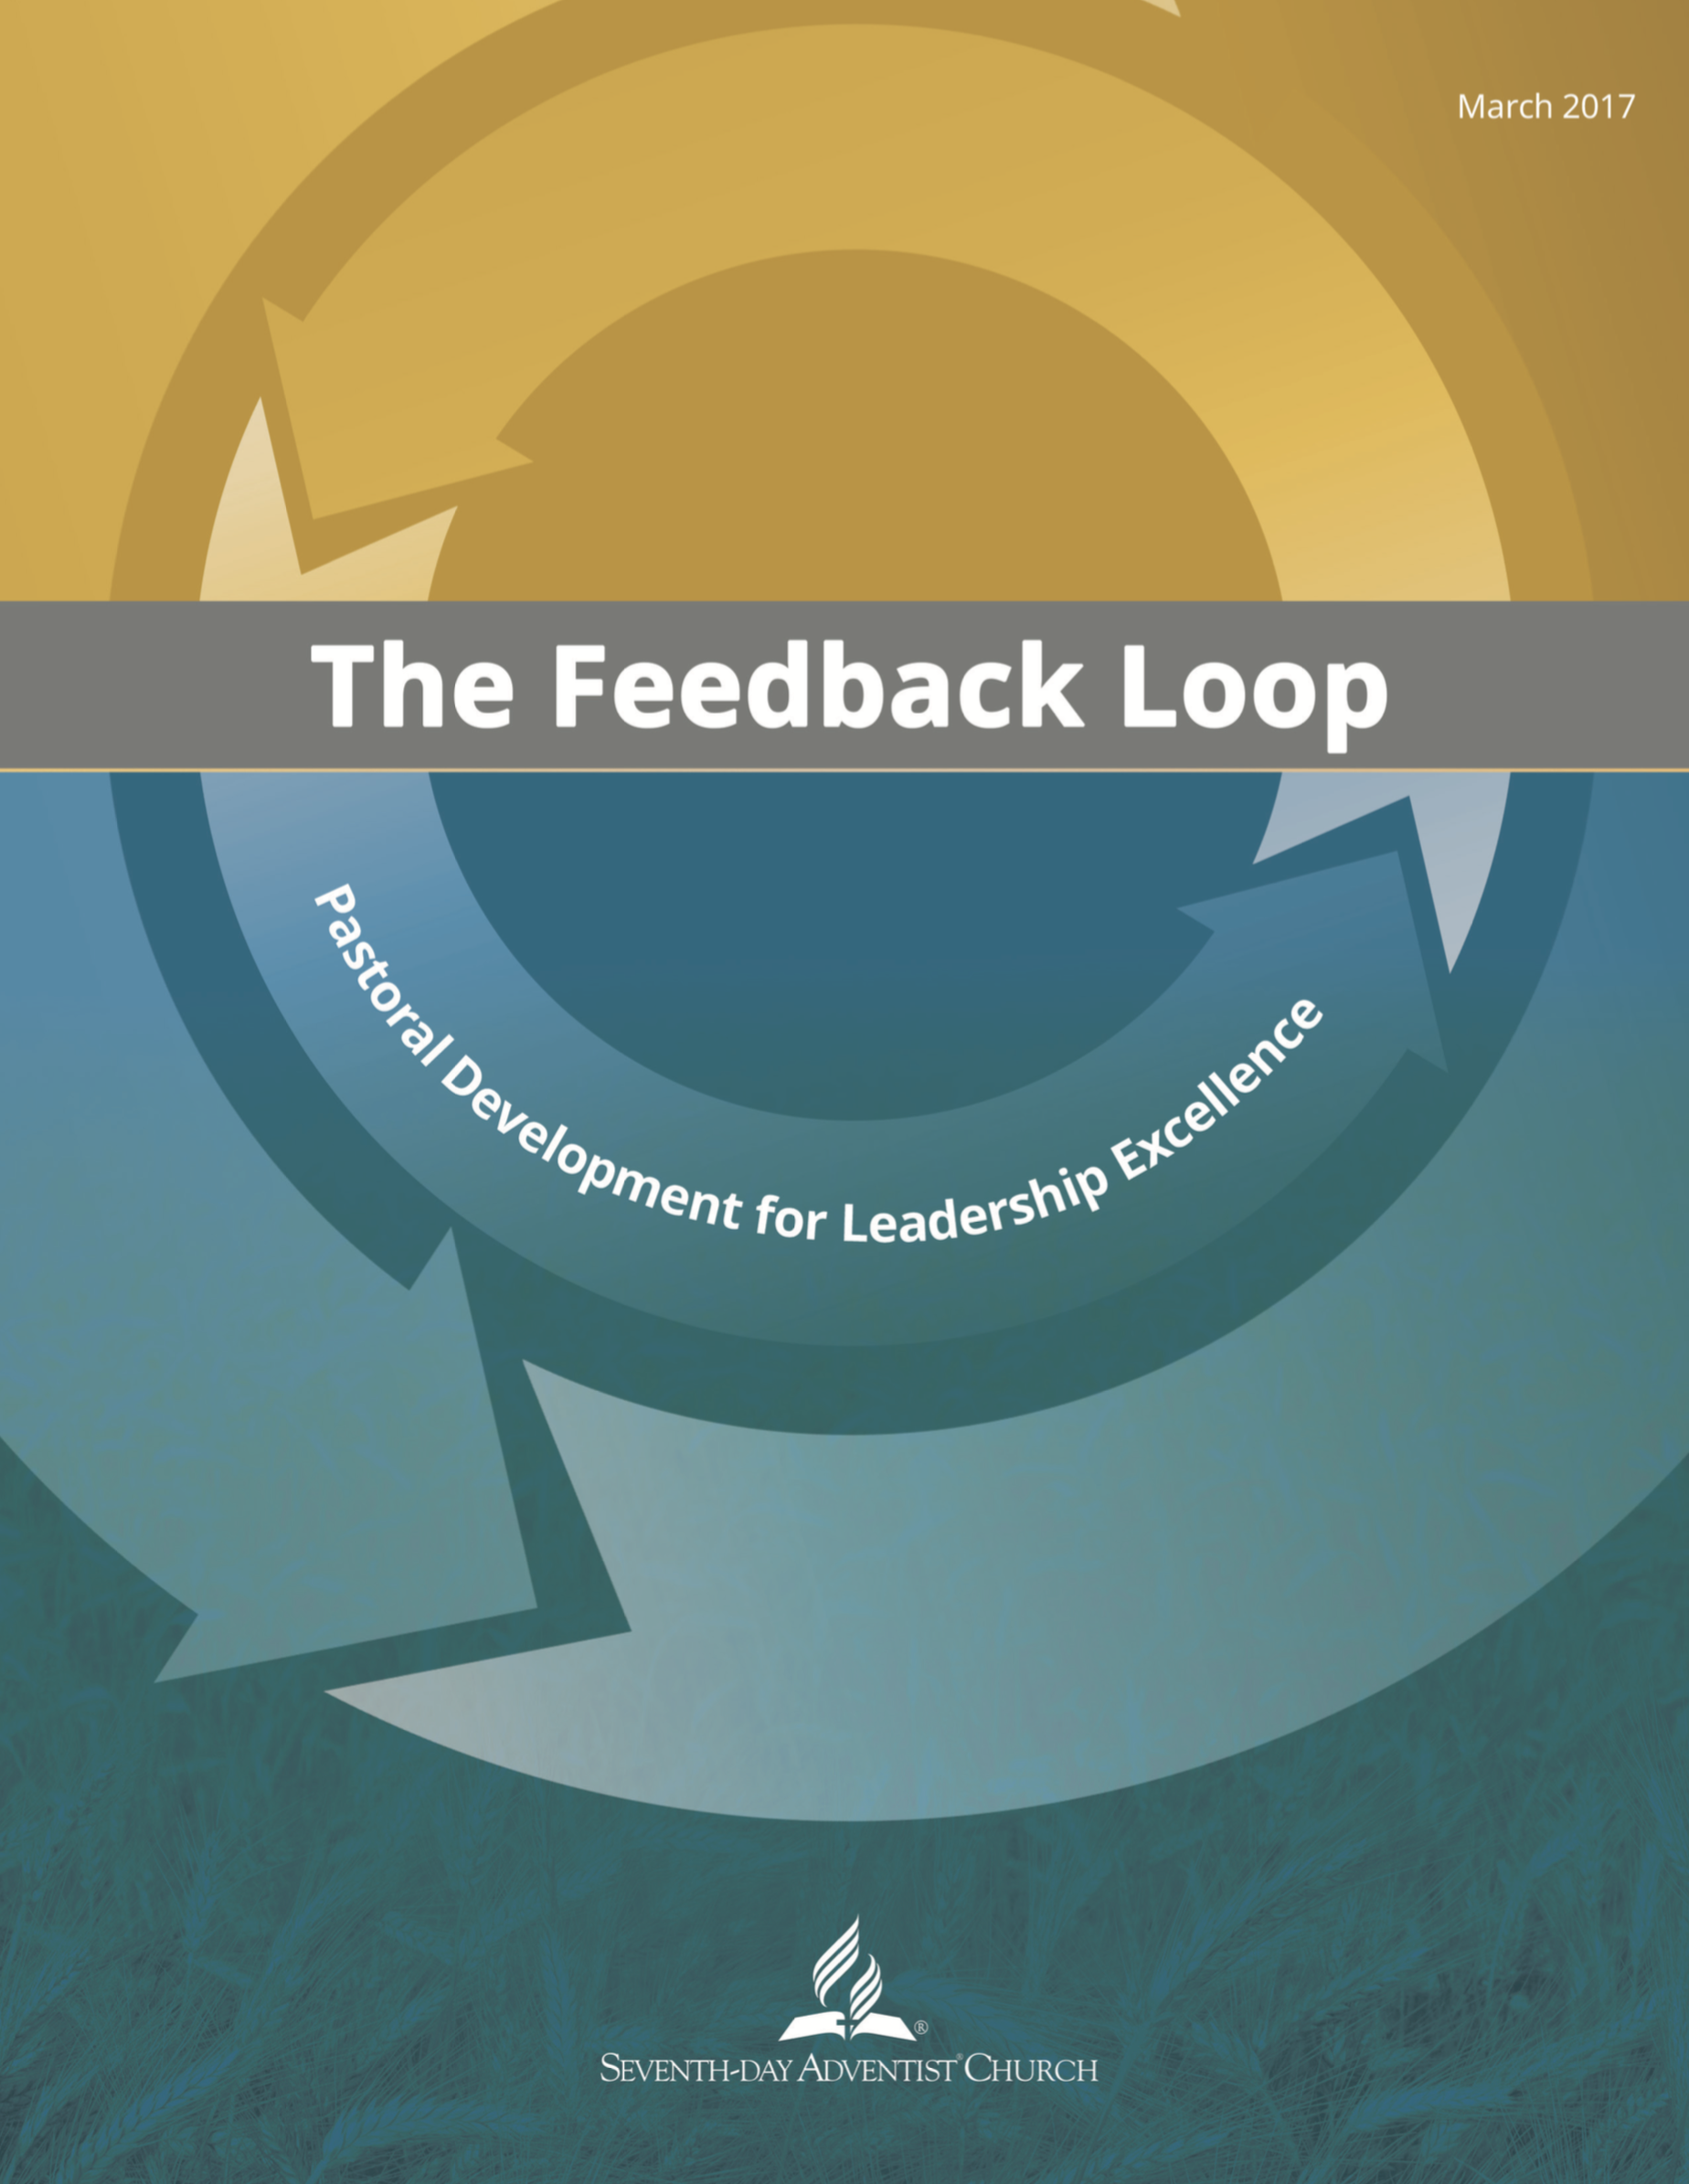 Click on the image to download the feedback loop.